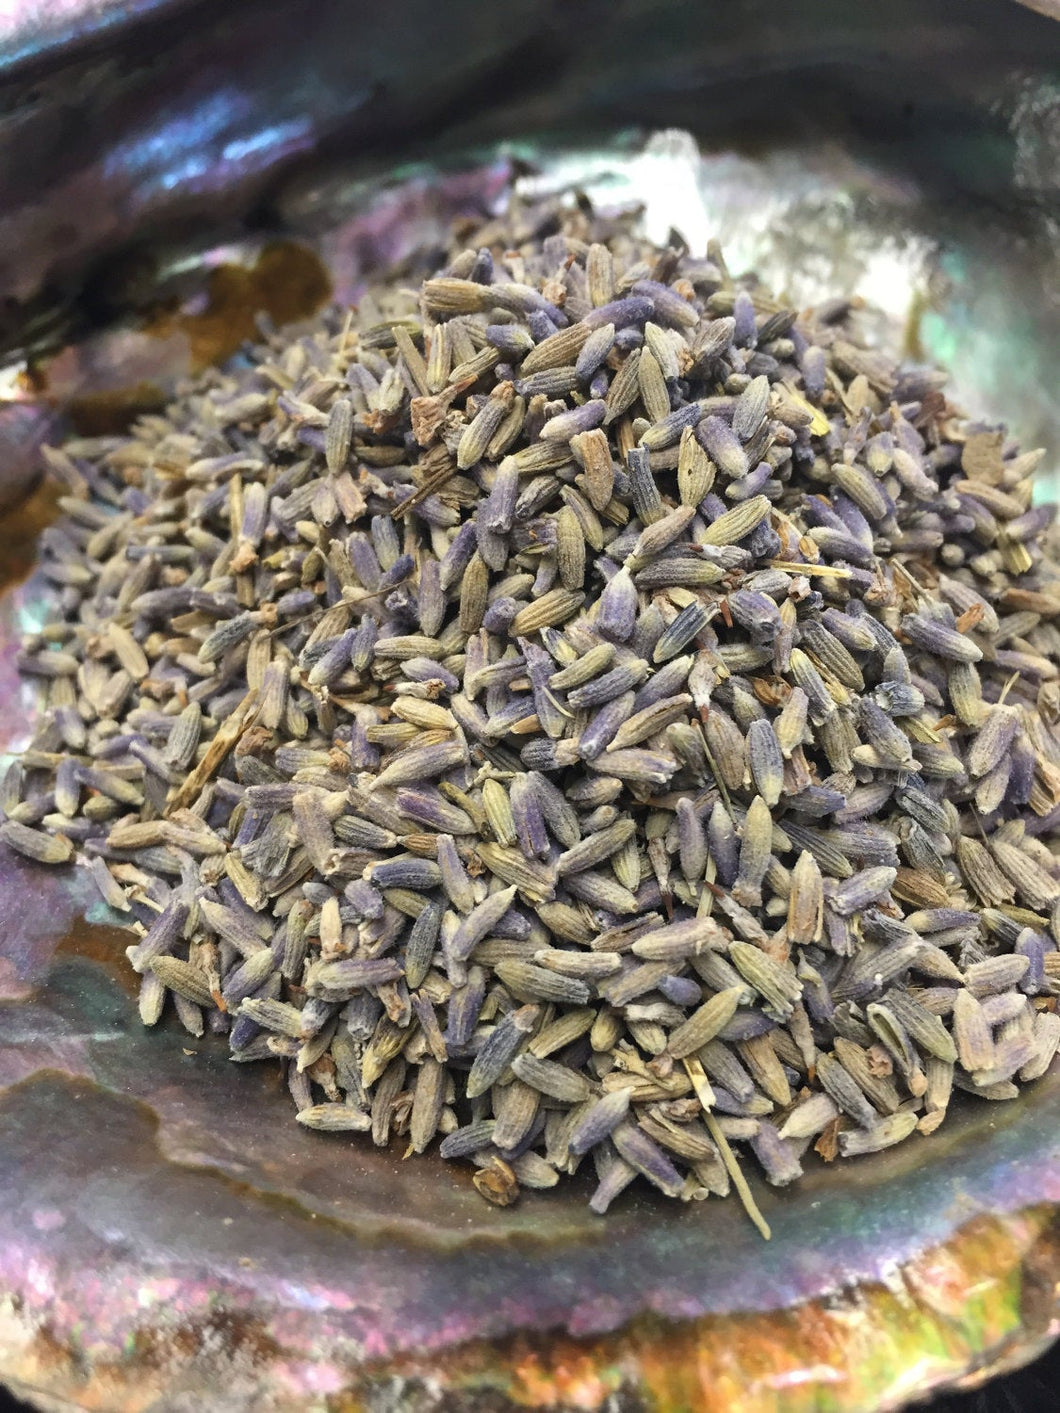 Lavender Loose Purple Buds 1 oz Herbal Cotton Sachet for Relaxation